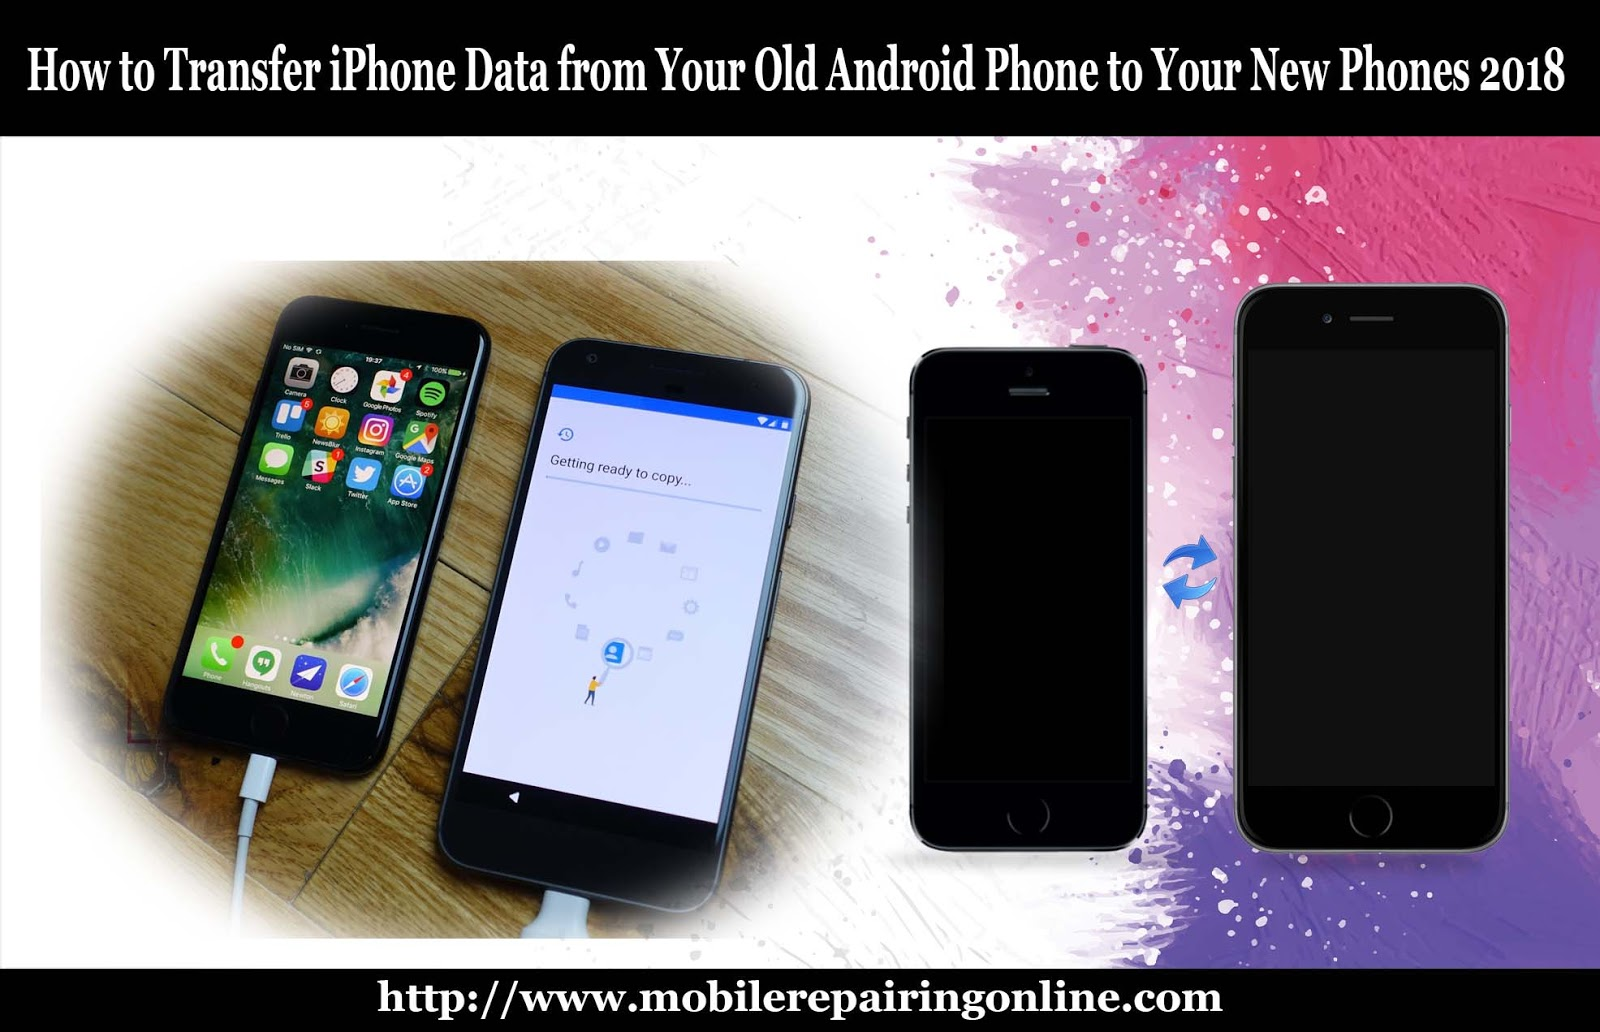 how to set up new iphone from old iphone